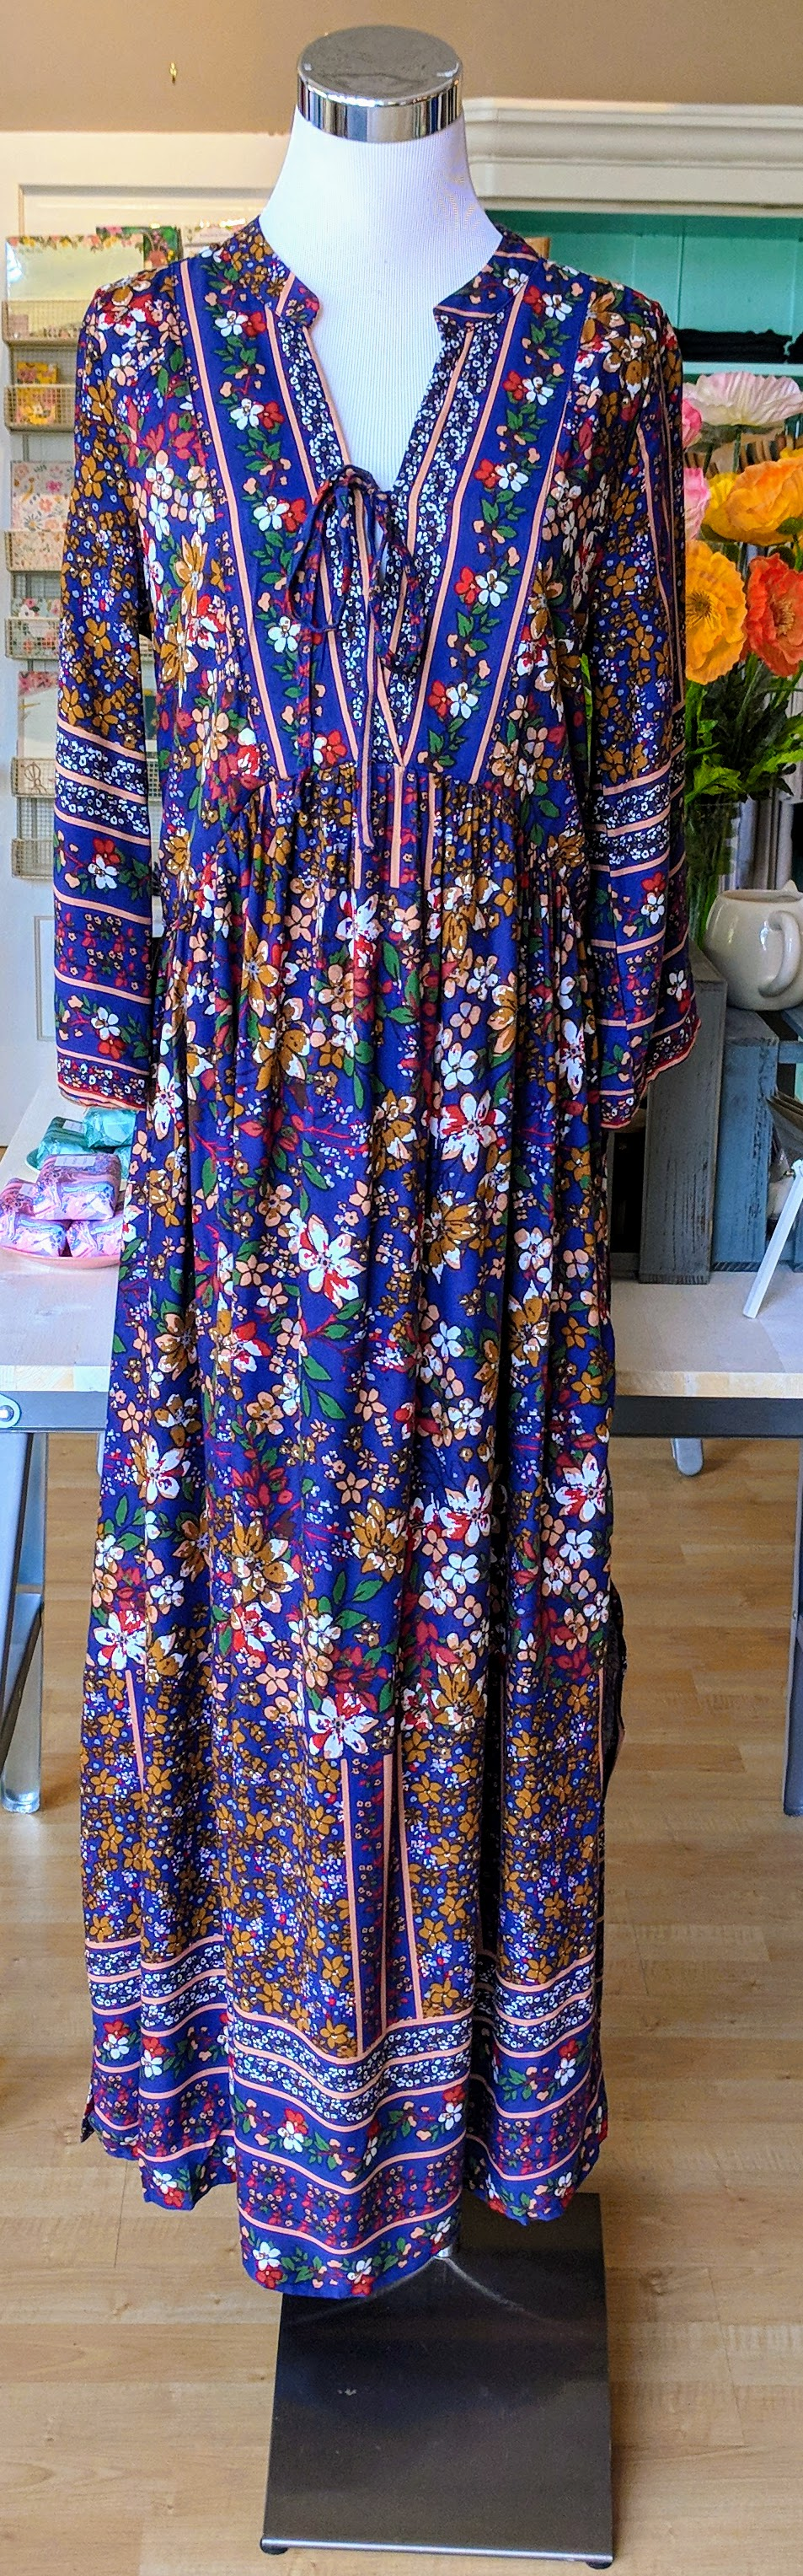 Blue pattern maxi smock dress with tie neck and 3/4 sleeve.